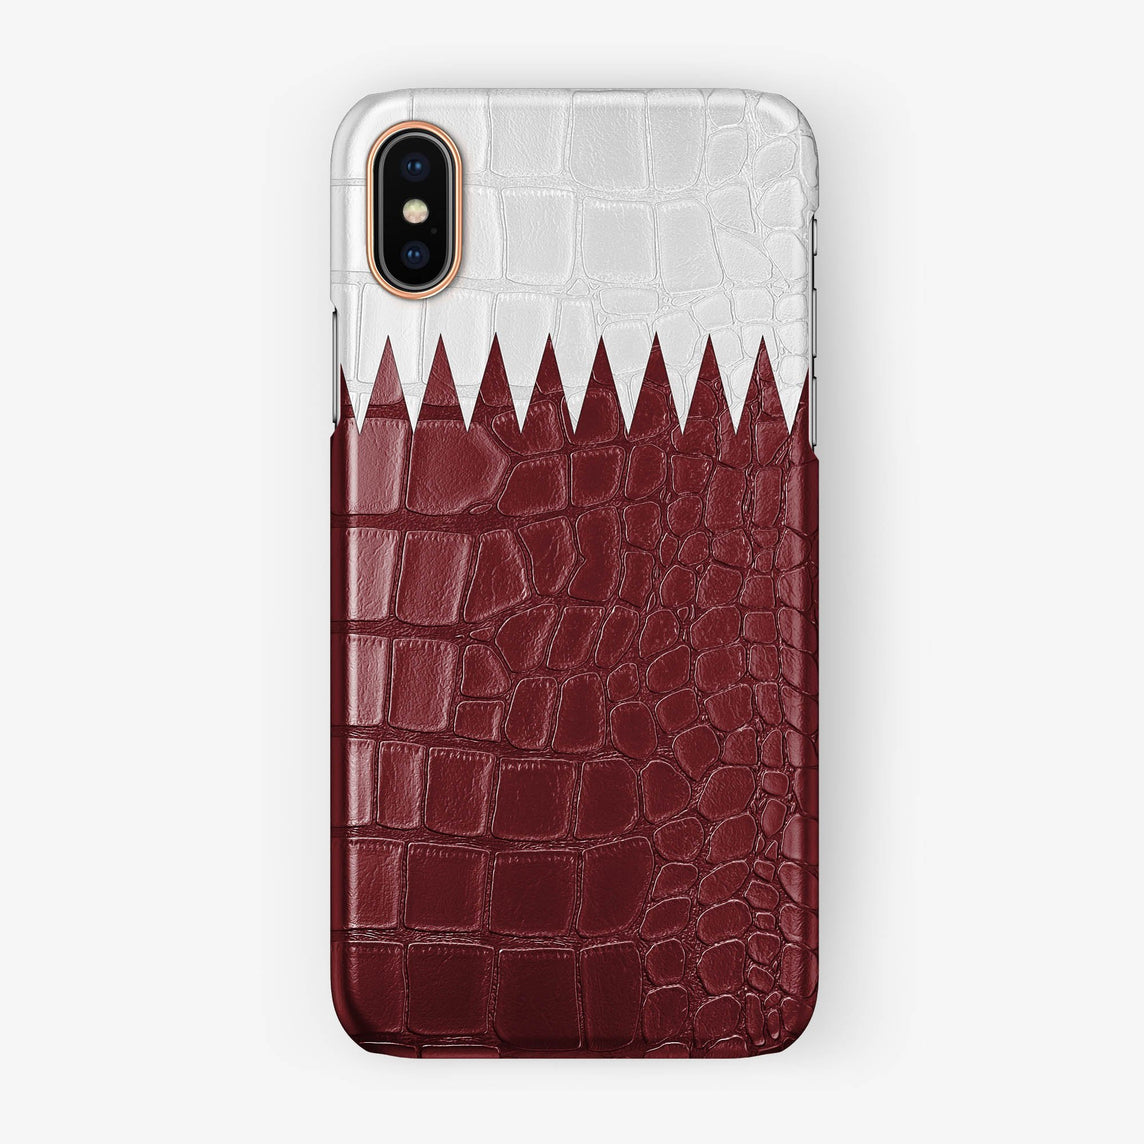 Alligator Case Flag of Qatar iPhone X/Xs | Rose Gold - Hadoro